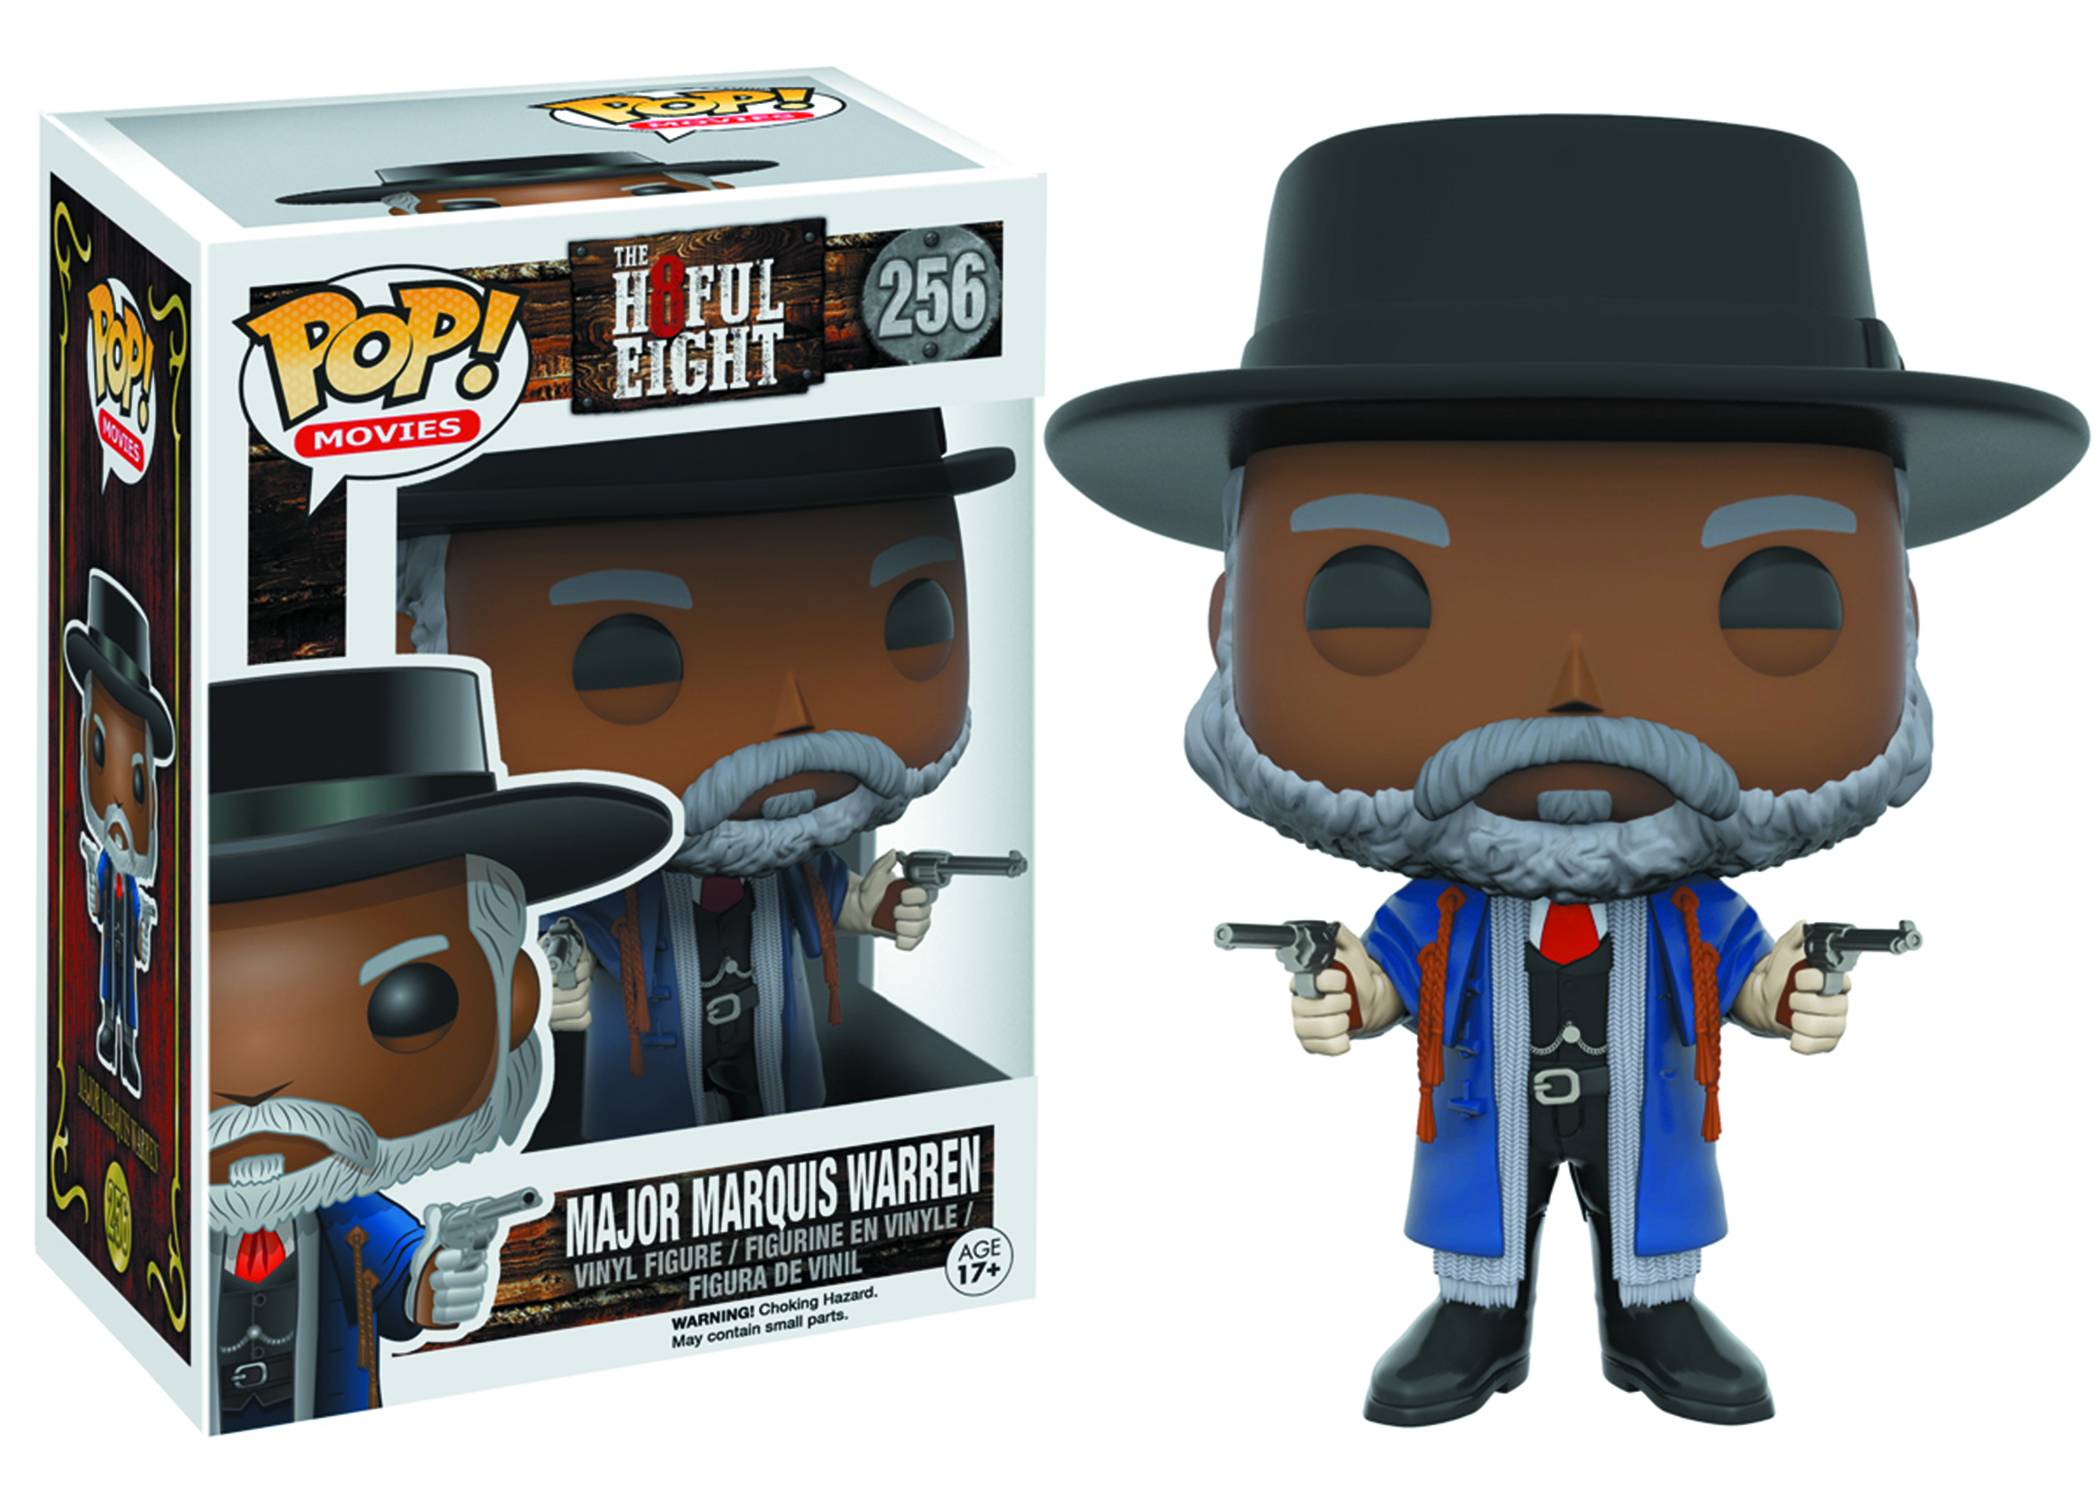 POP HATEFUL EIGHT MARQUIS WARREN VINYL FIG